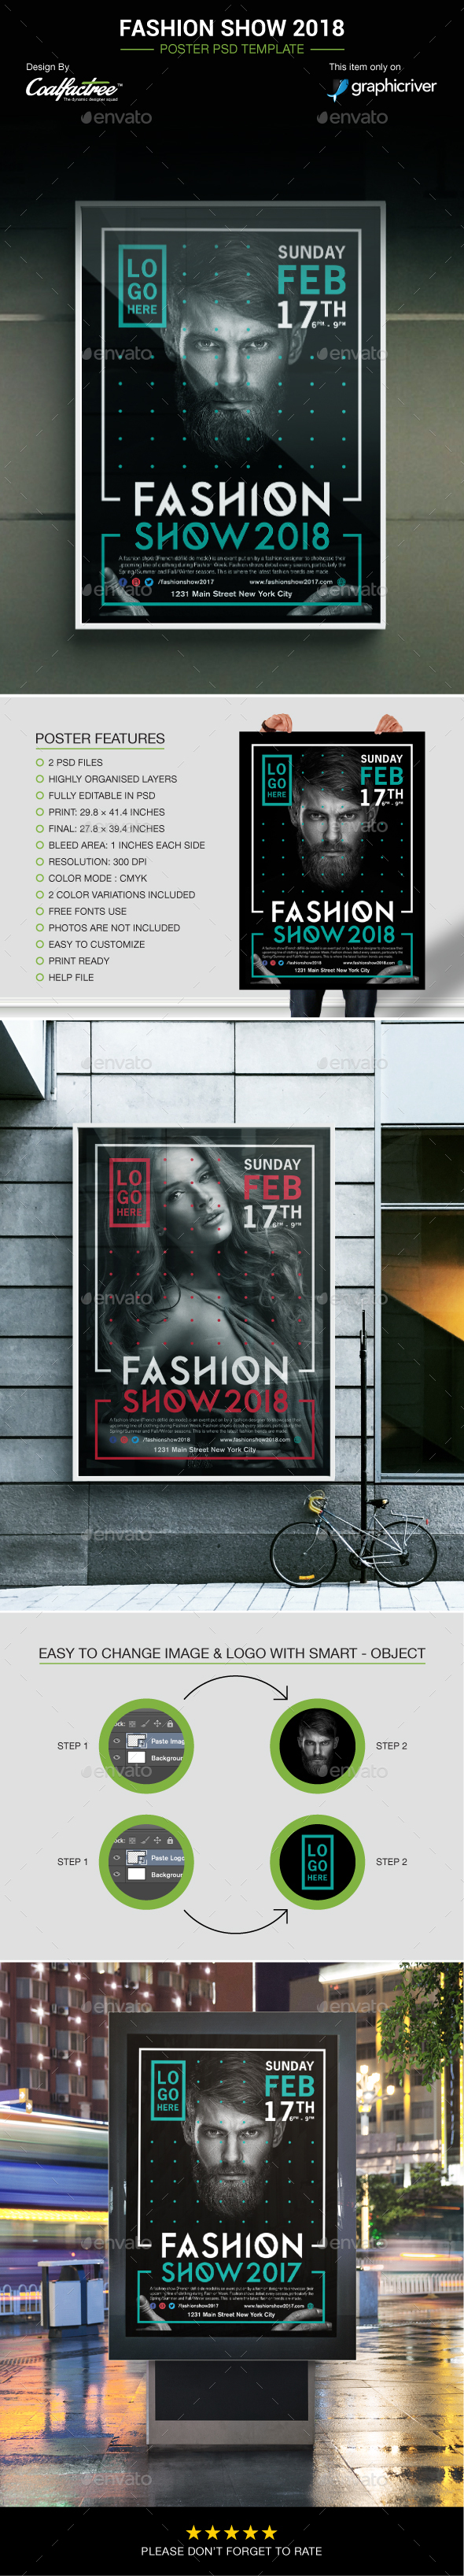 Fashion Show 2018 Poster - Events Flyers